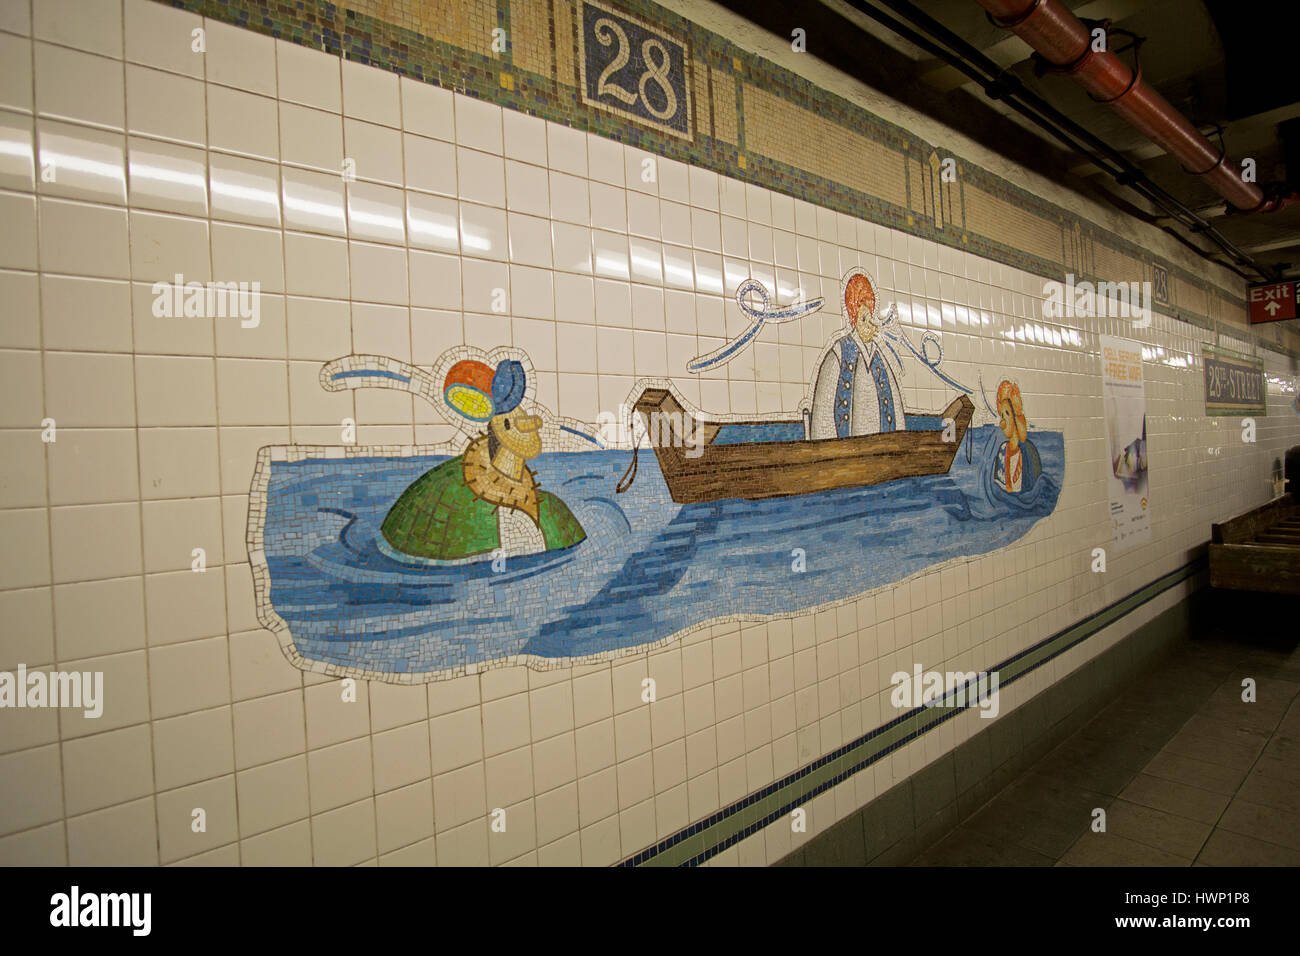 Subway Art On Platform 28th High Resolution Stock Photography And Images Alamy